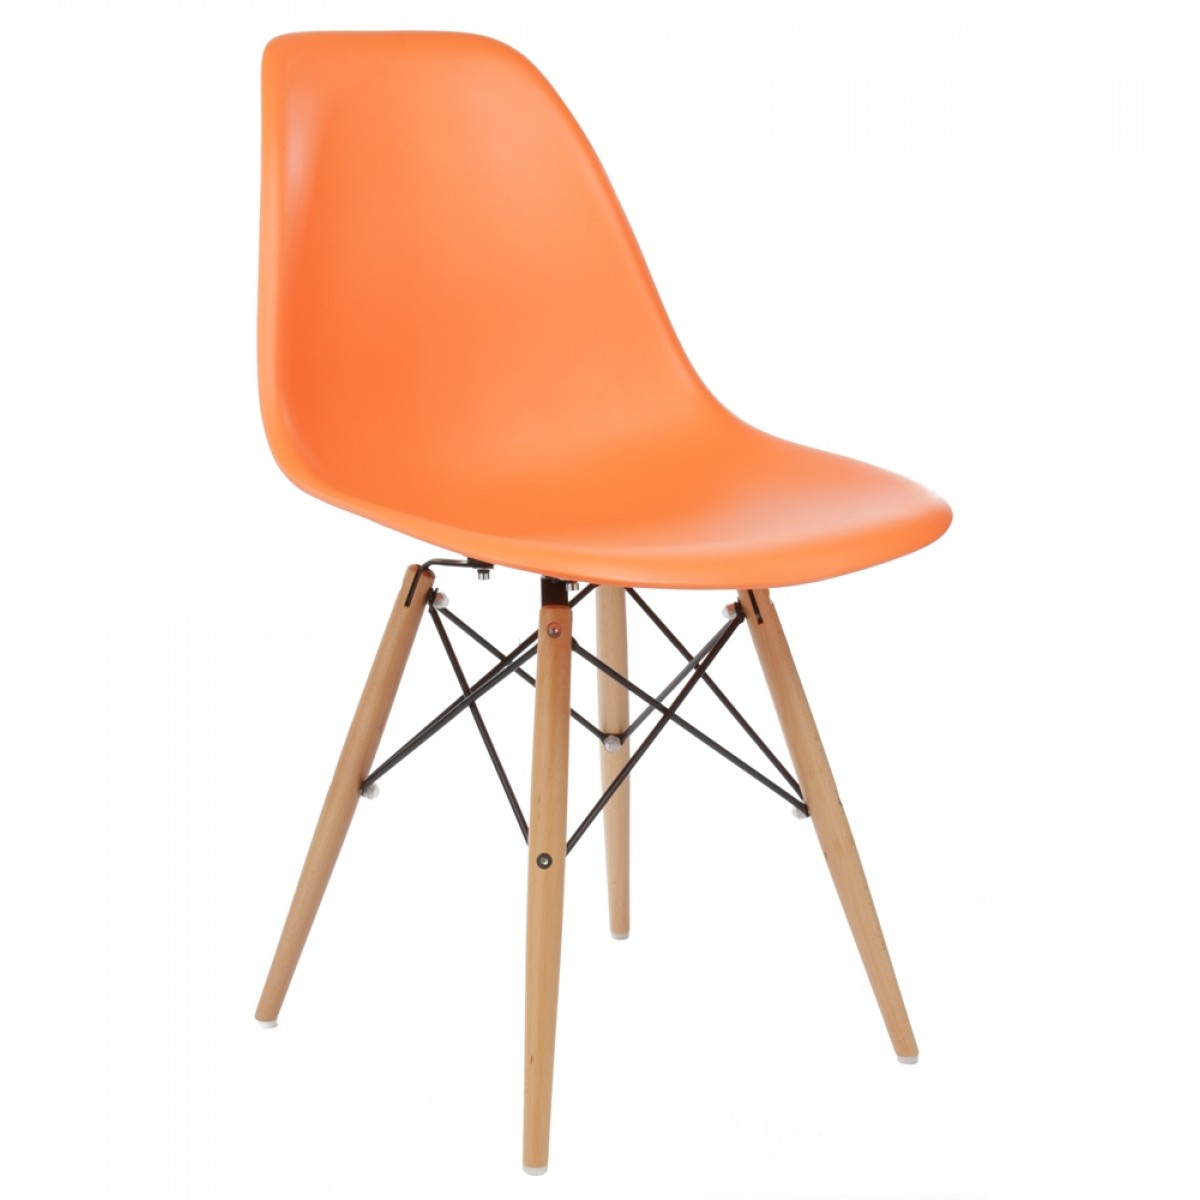 Eames Style Dsw Molded Orange Plastic Dining Shell Chair